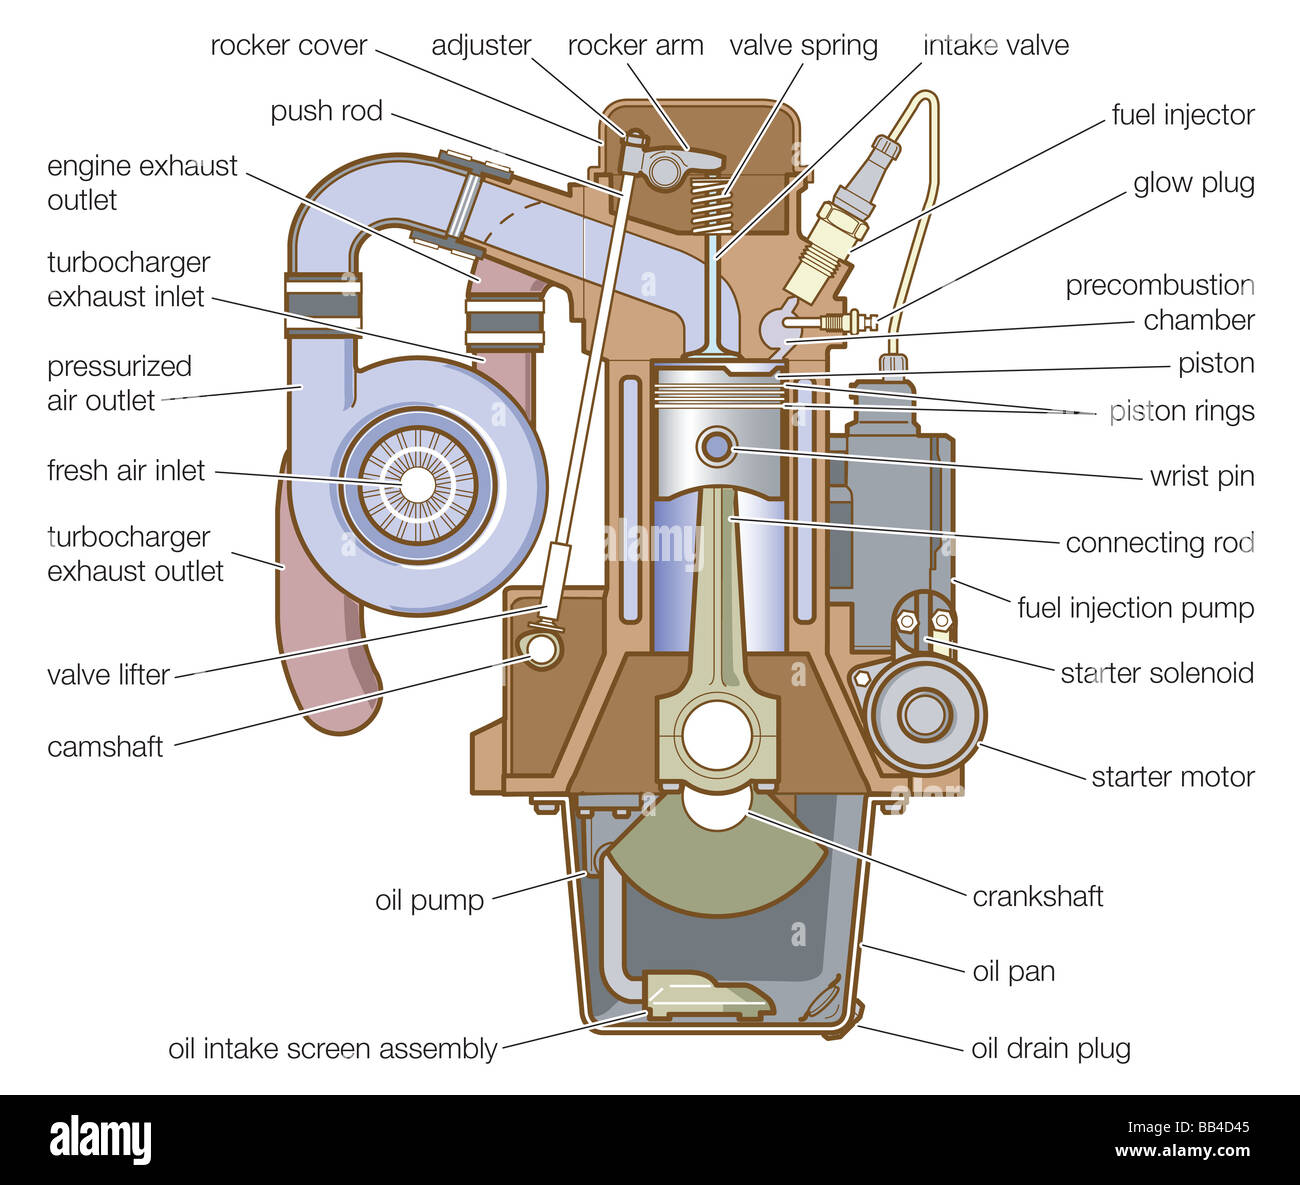 Diesel engine equipped with a precombustion chamber. - Stock Image